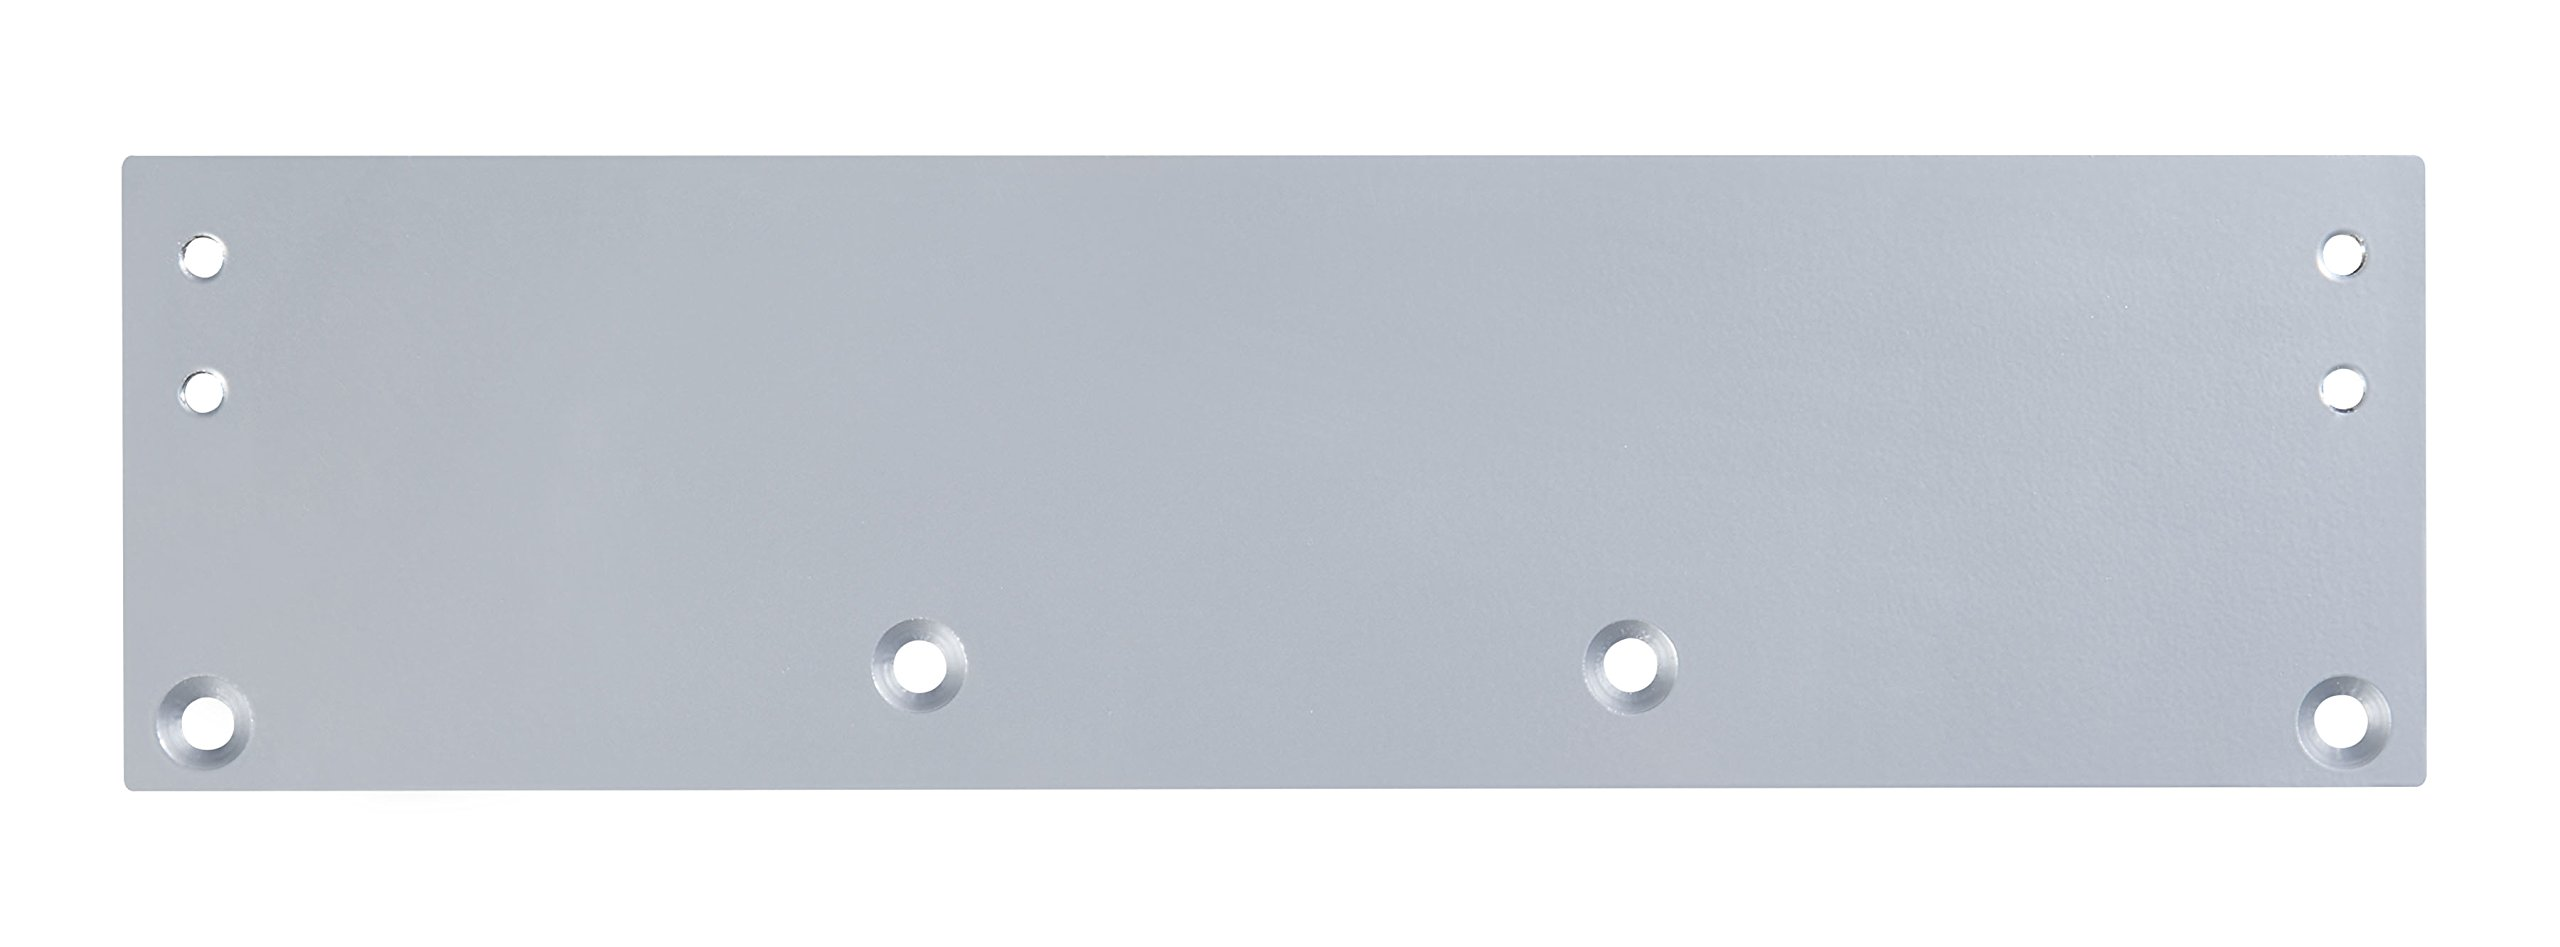 Apoc Industries AP-1000-DS-TA LED Light Bar Roof Mount Double Stack for 42 Inch Curved 95-04 Toyota Tacoma 2 Pack